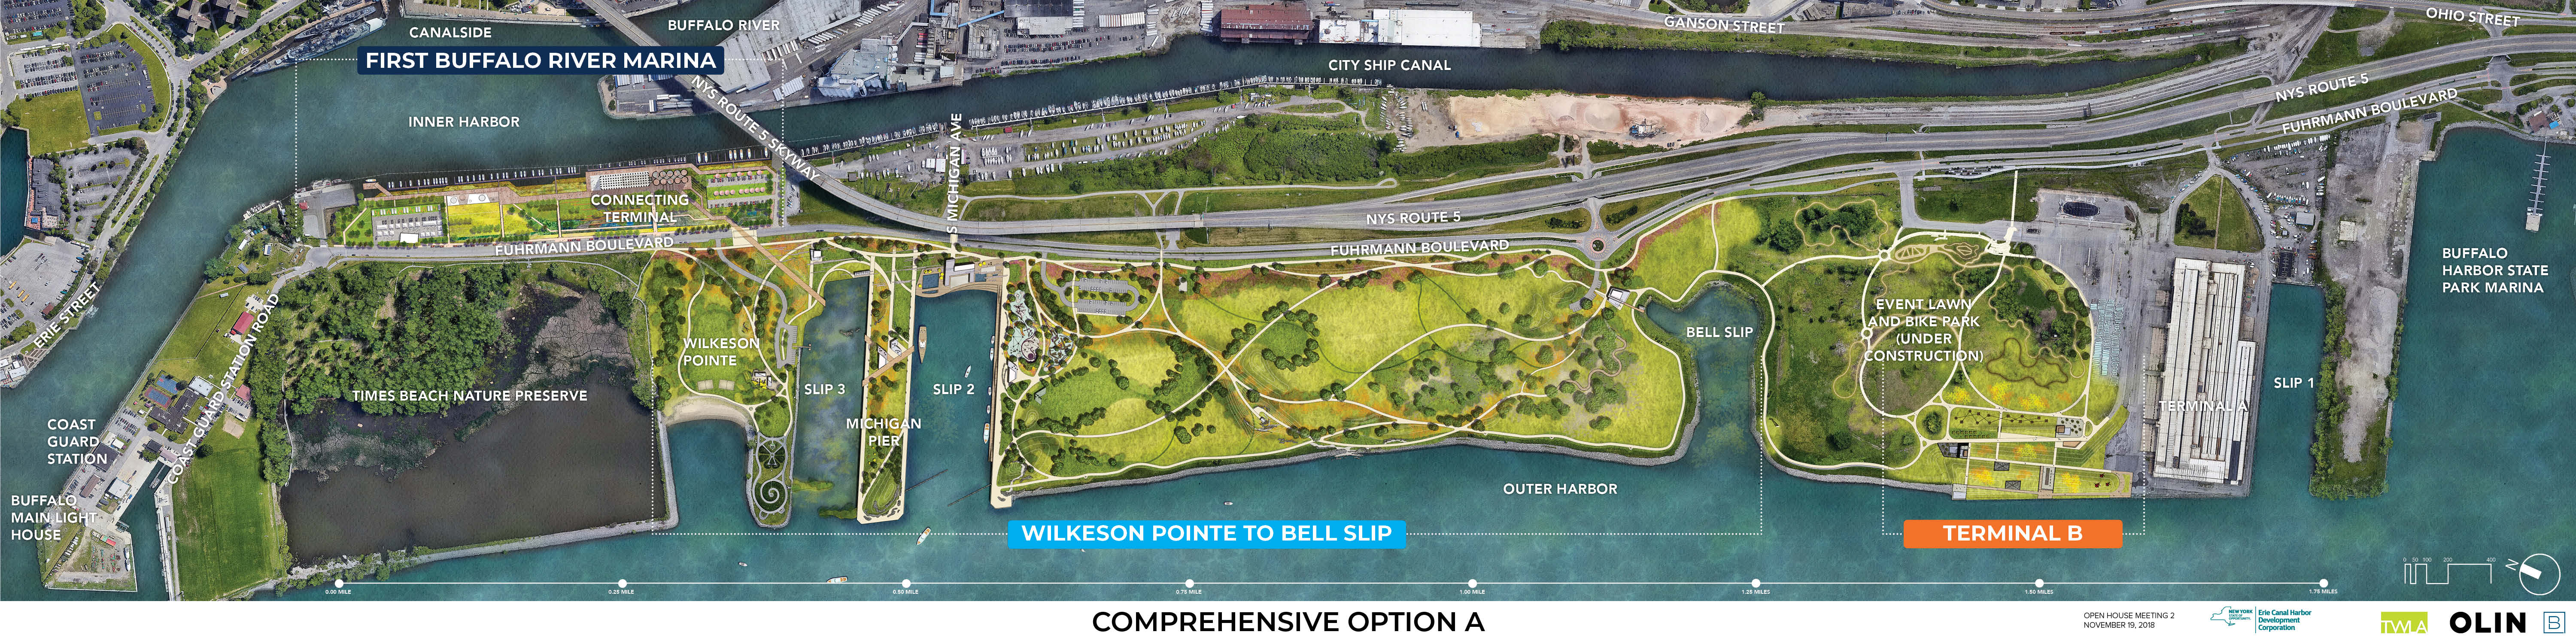 Overall Outer Harbor Capital Plan Option A